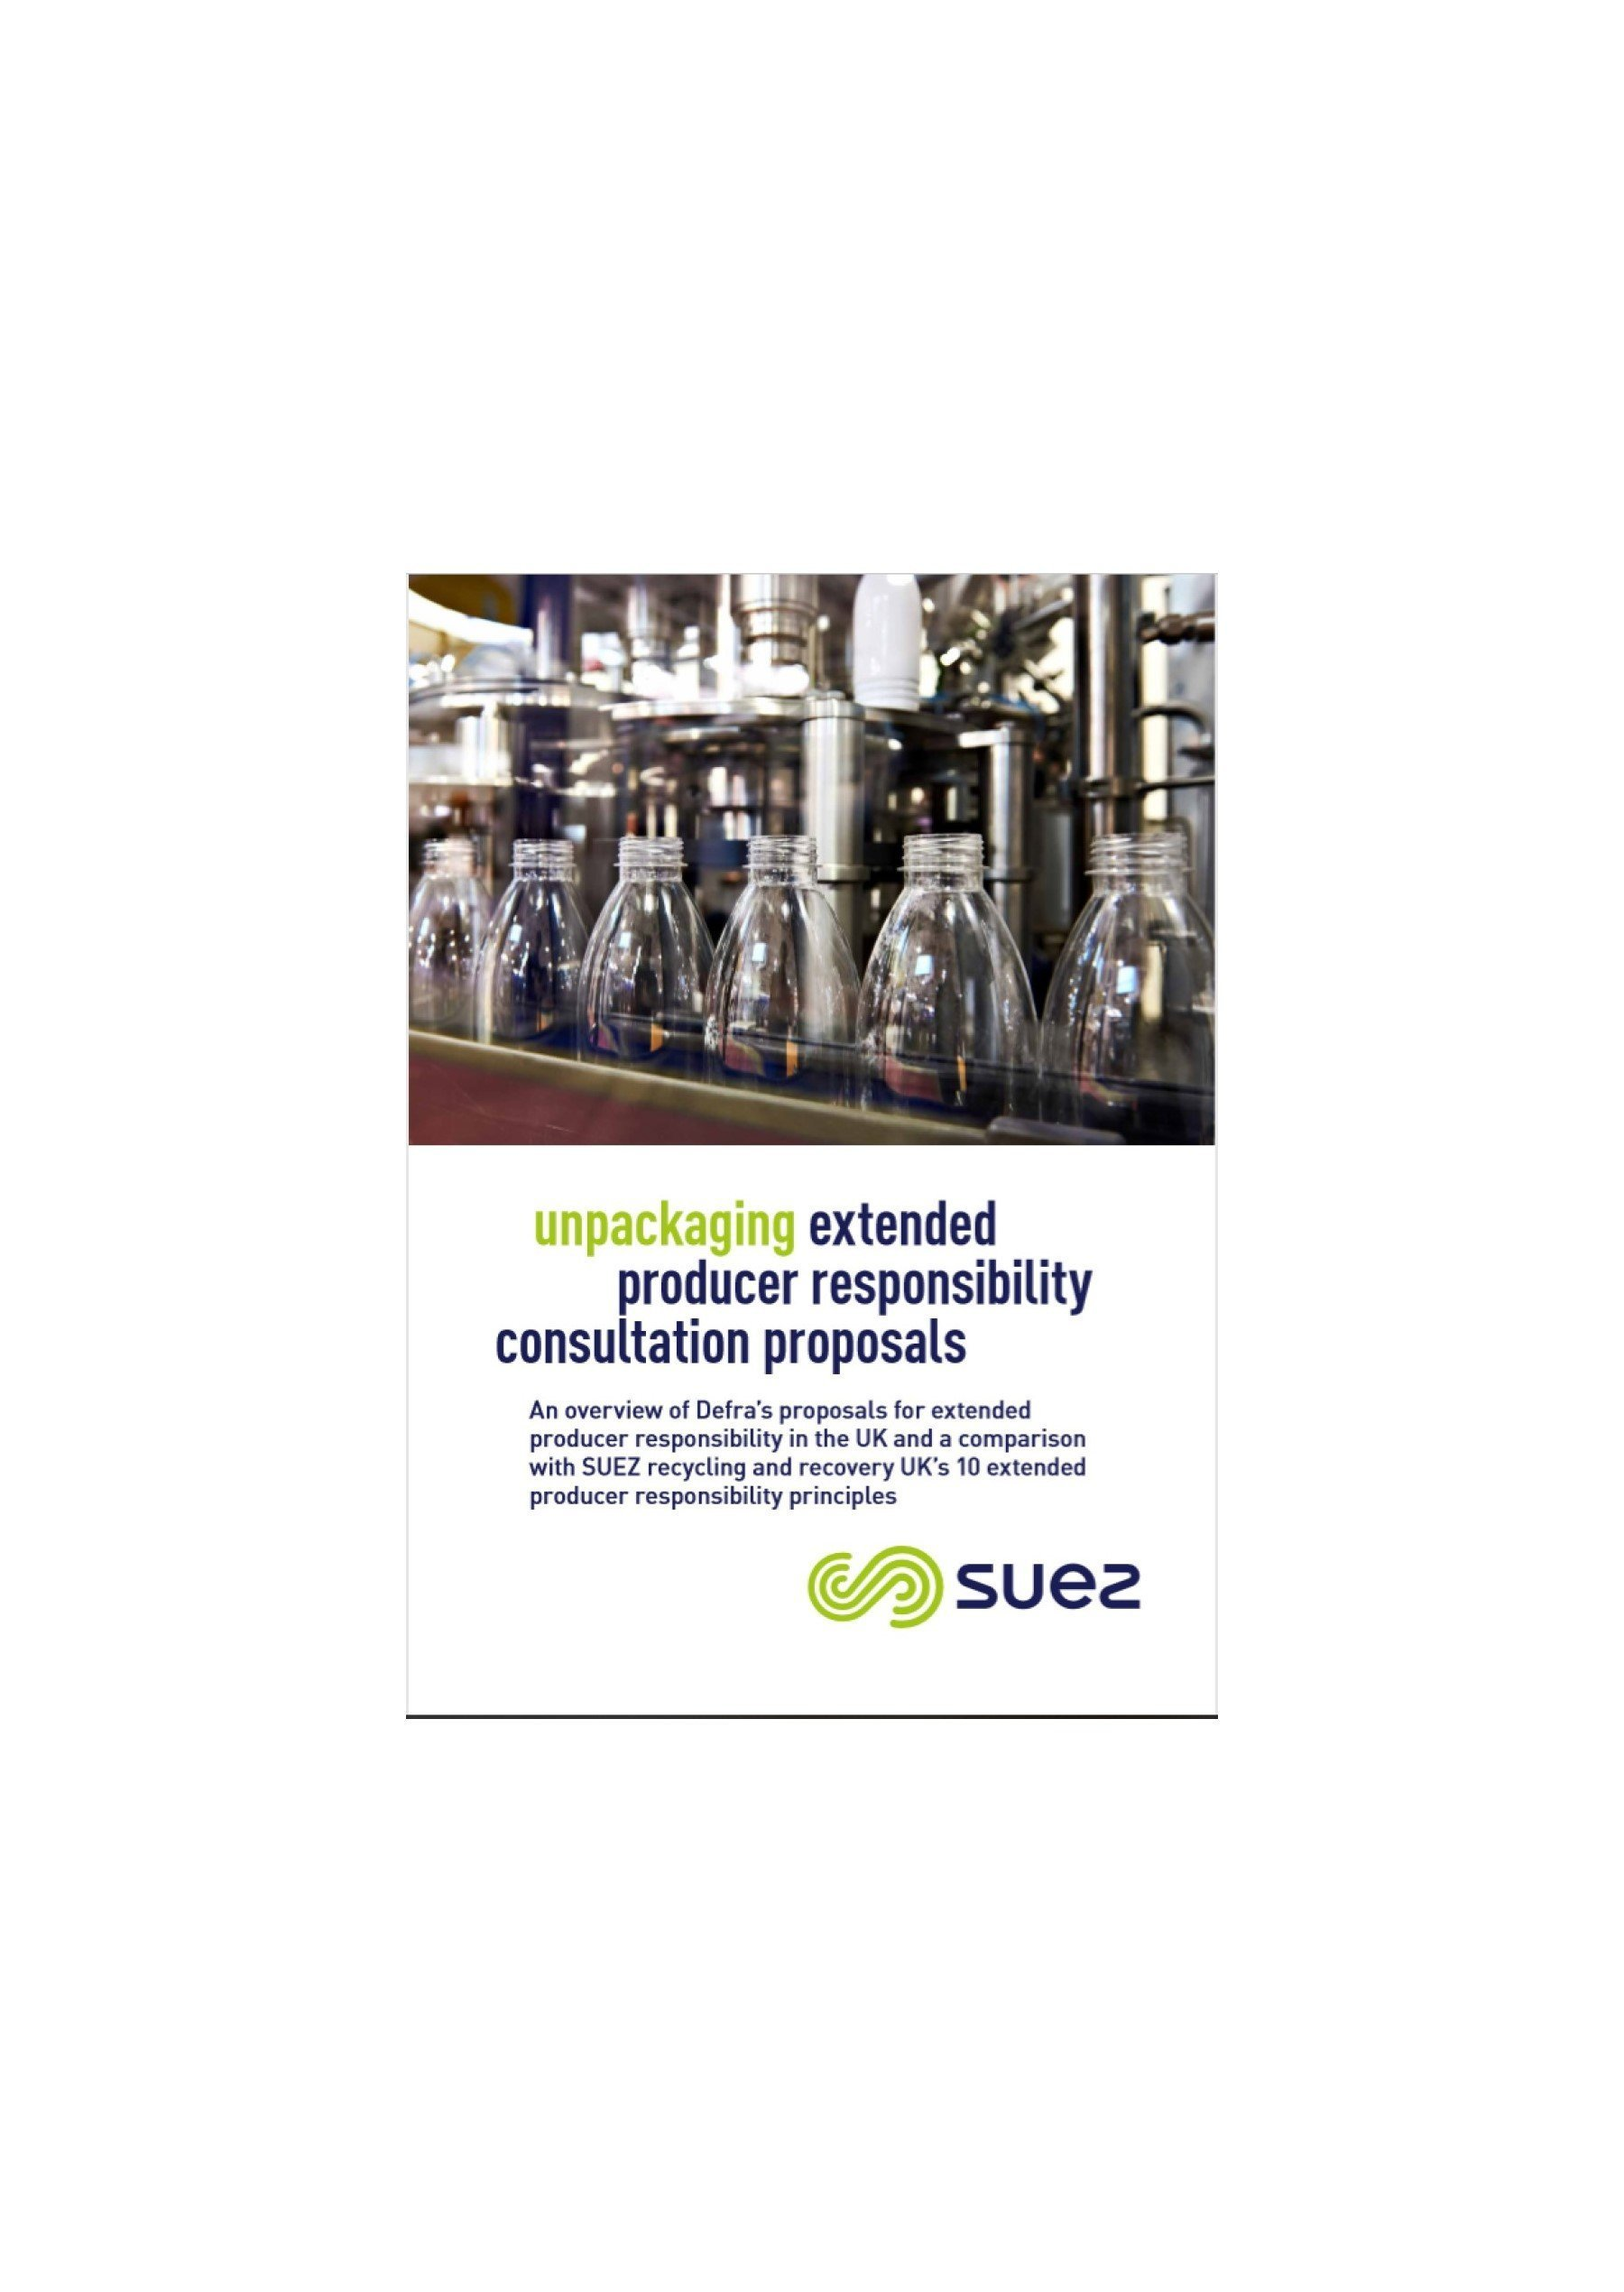 SUEZ publishes review of Defra producer-responsibility proposals